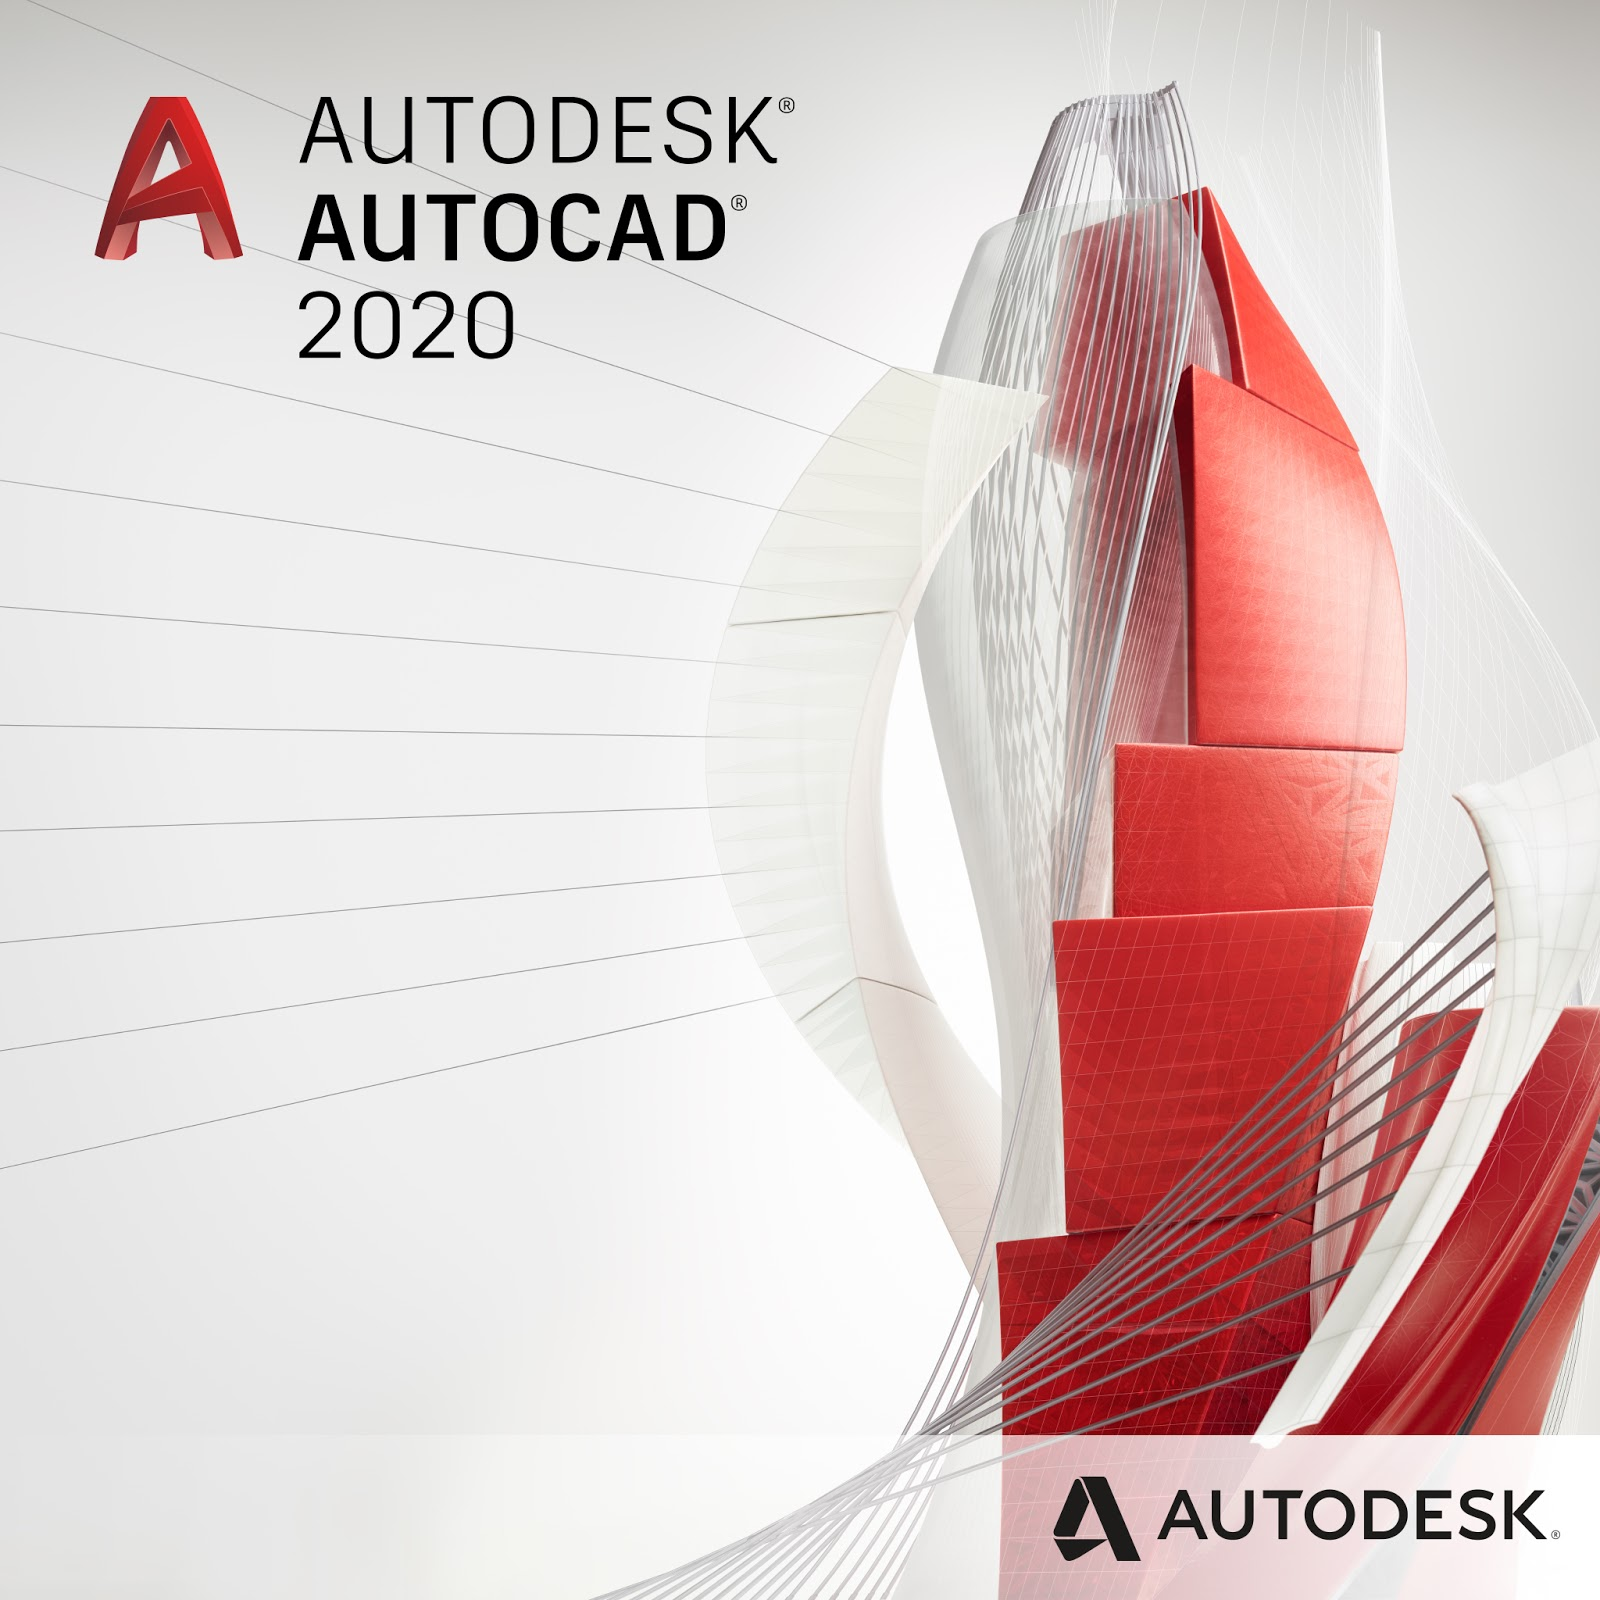 HOW TO INSTALL & ACTIVATE AUTOCAD 2020 FOR FREE